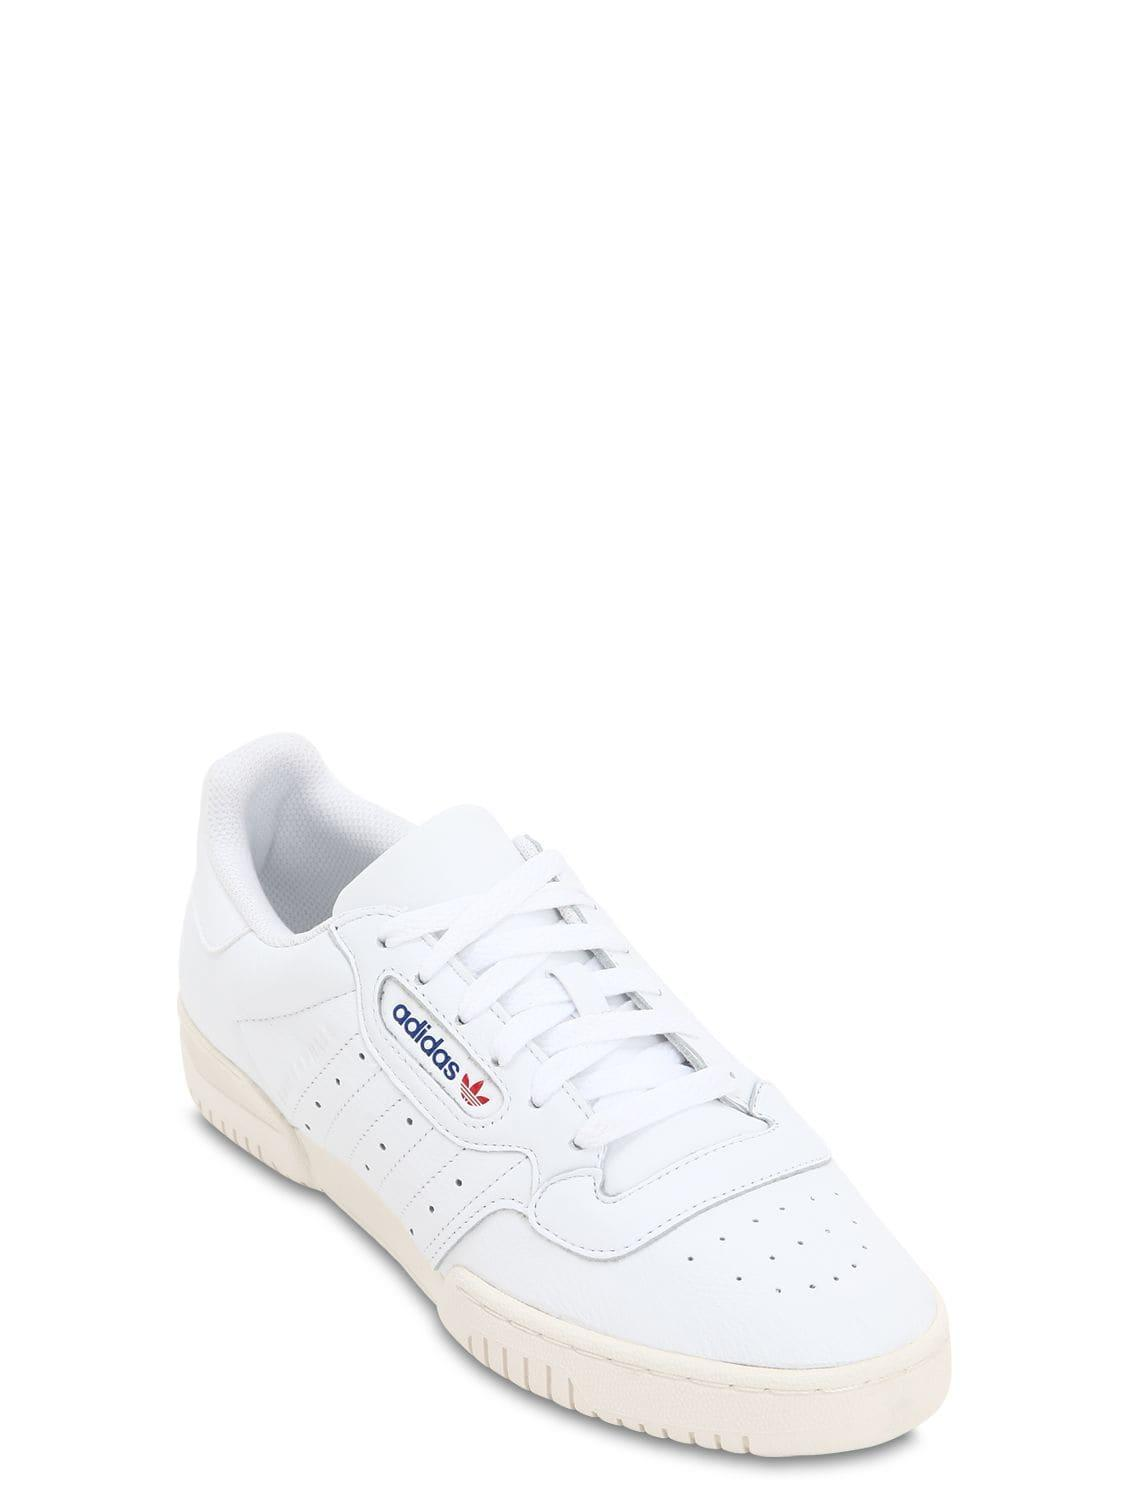 138c75c7284a2 Lyst - adidas Originals Powerphase Premium Leather Sneakers in White for Men